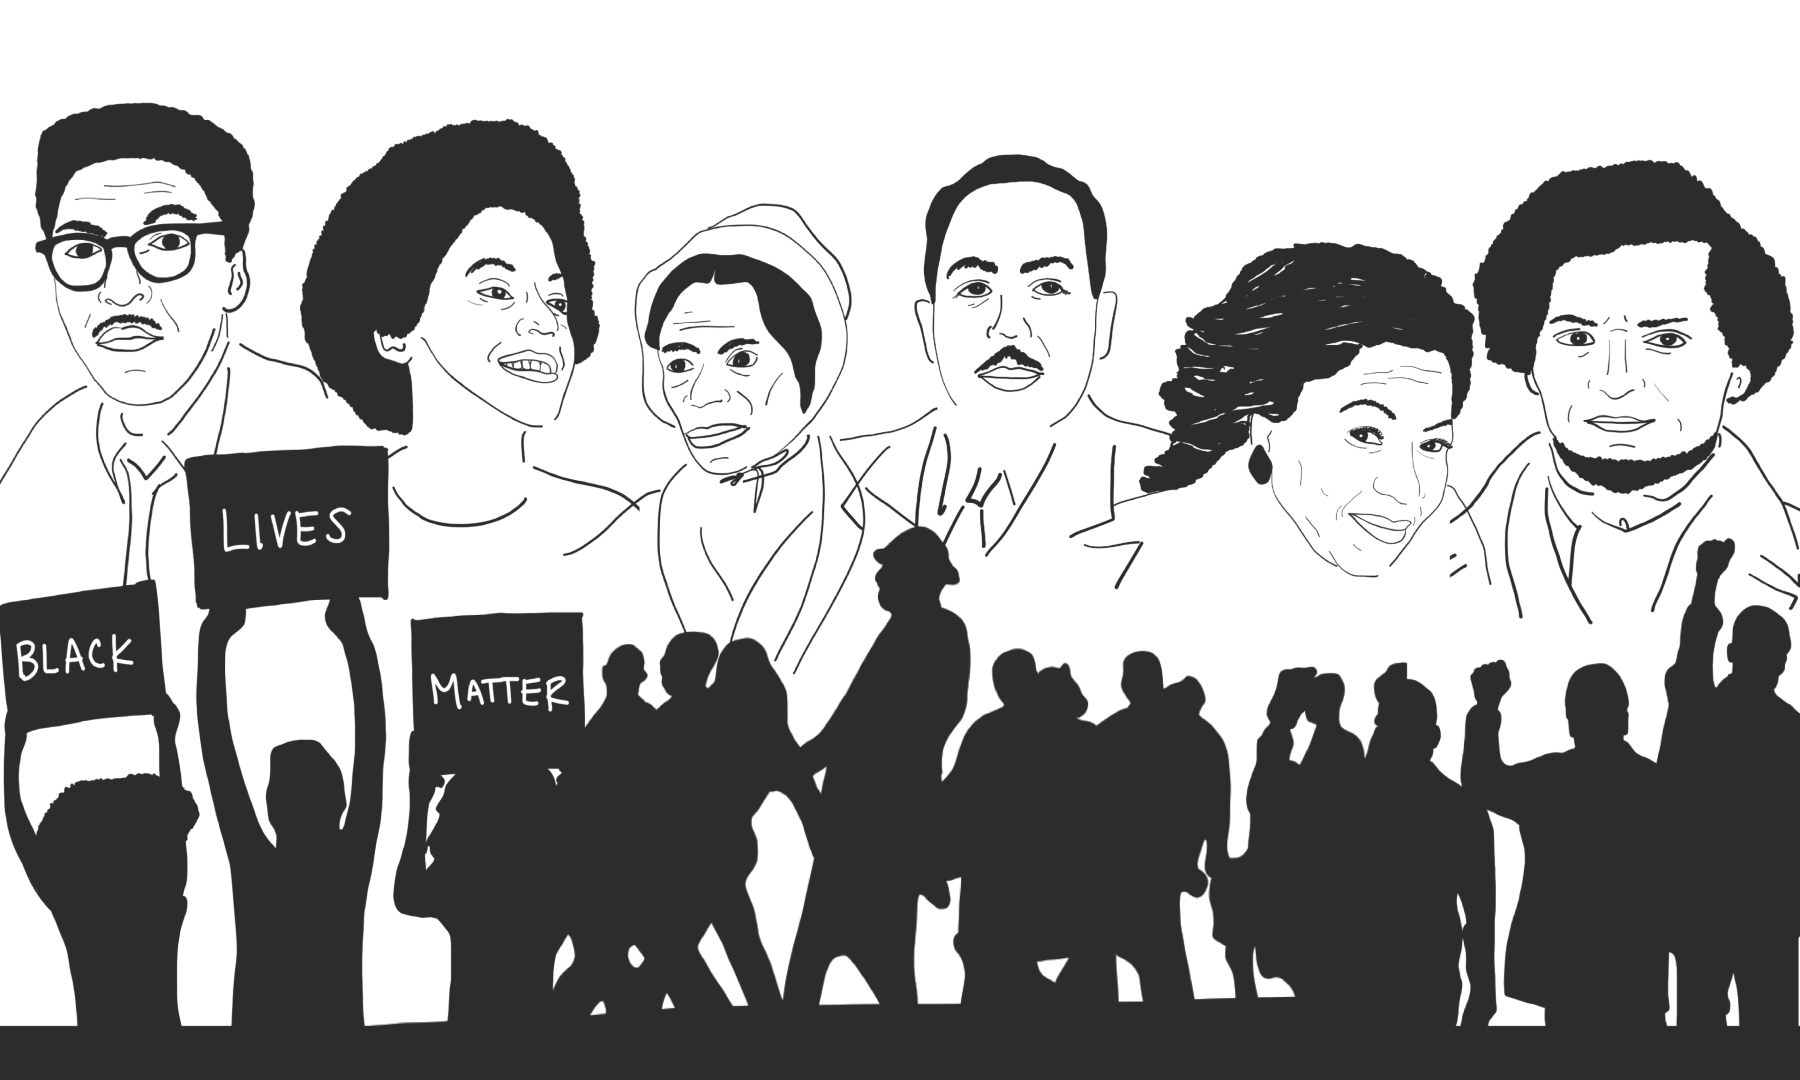 Teaching the Complete History, Civil Rights Movement, Rights and Activism, Black History Month